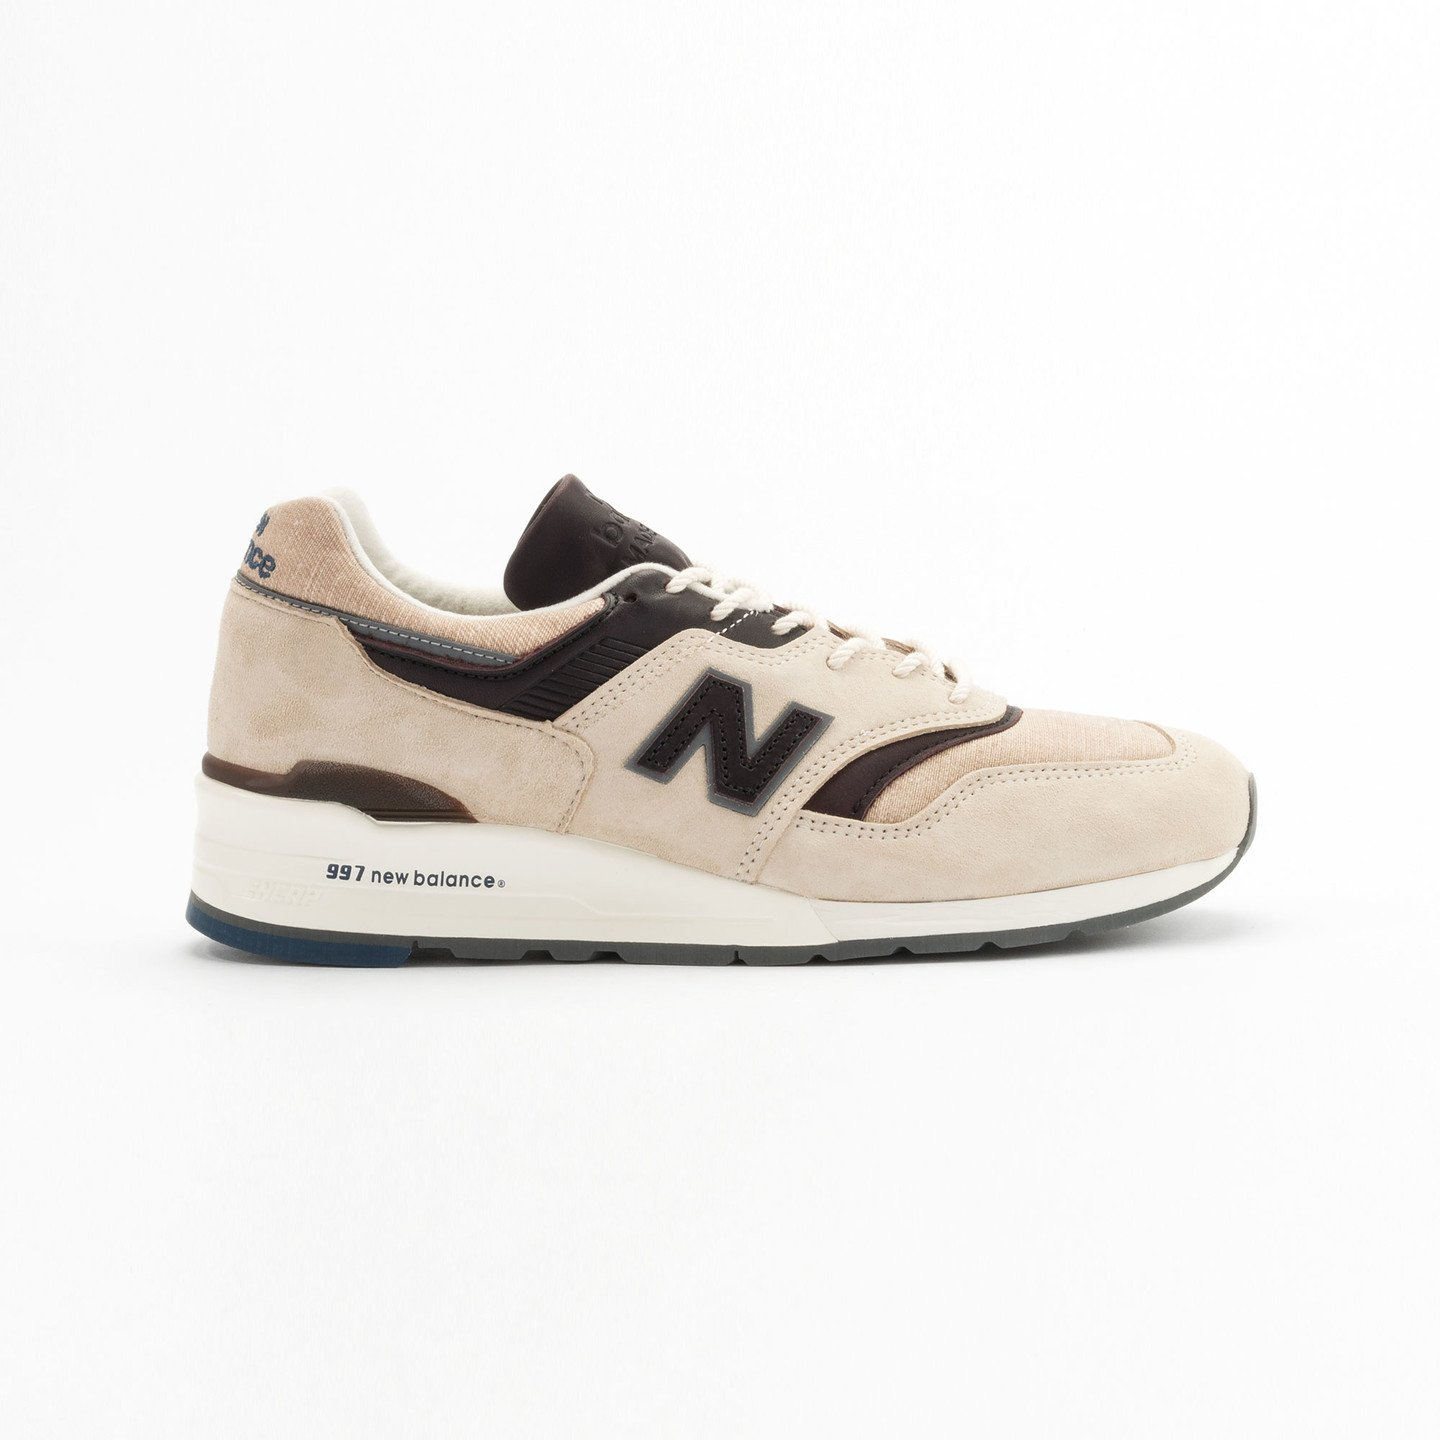 New Balance M997 DSAI - Made in USA Sand / Antique Brown M997DSAI-45.5